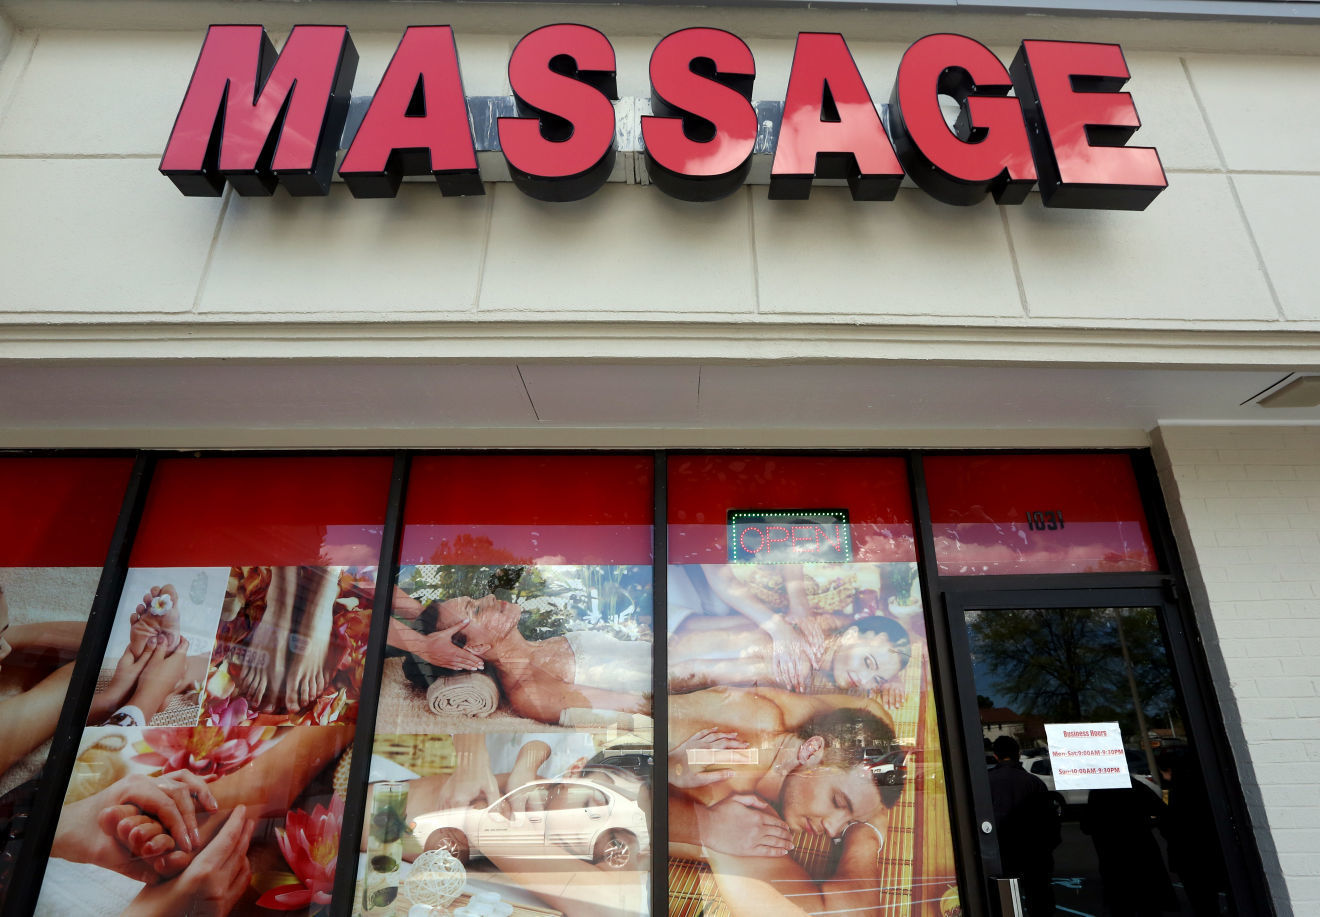 More than massages: A hidden sex industry in Hampton Roads - The Virginian-Pilot